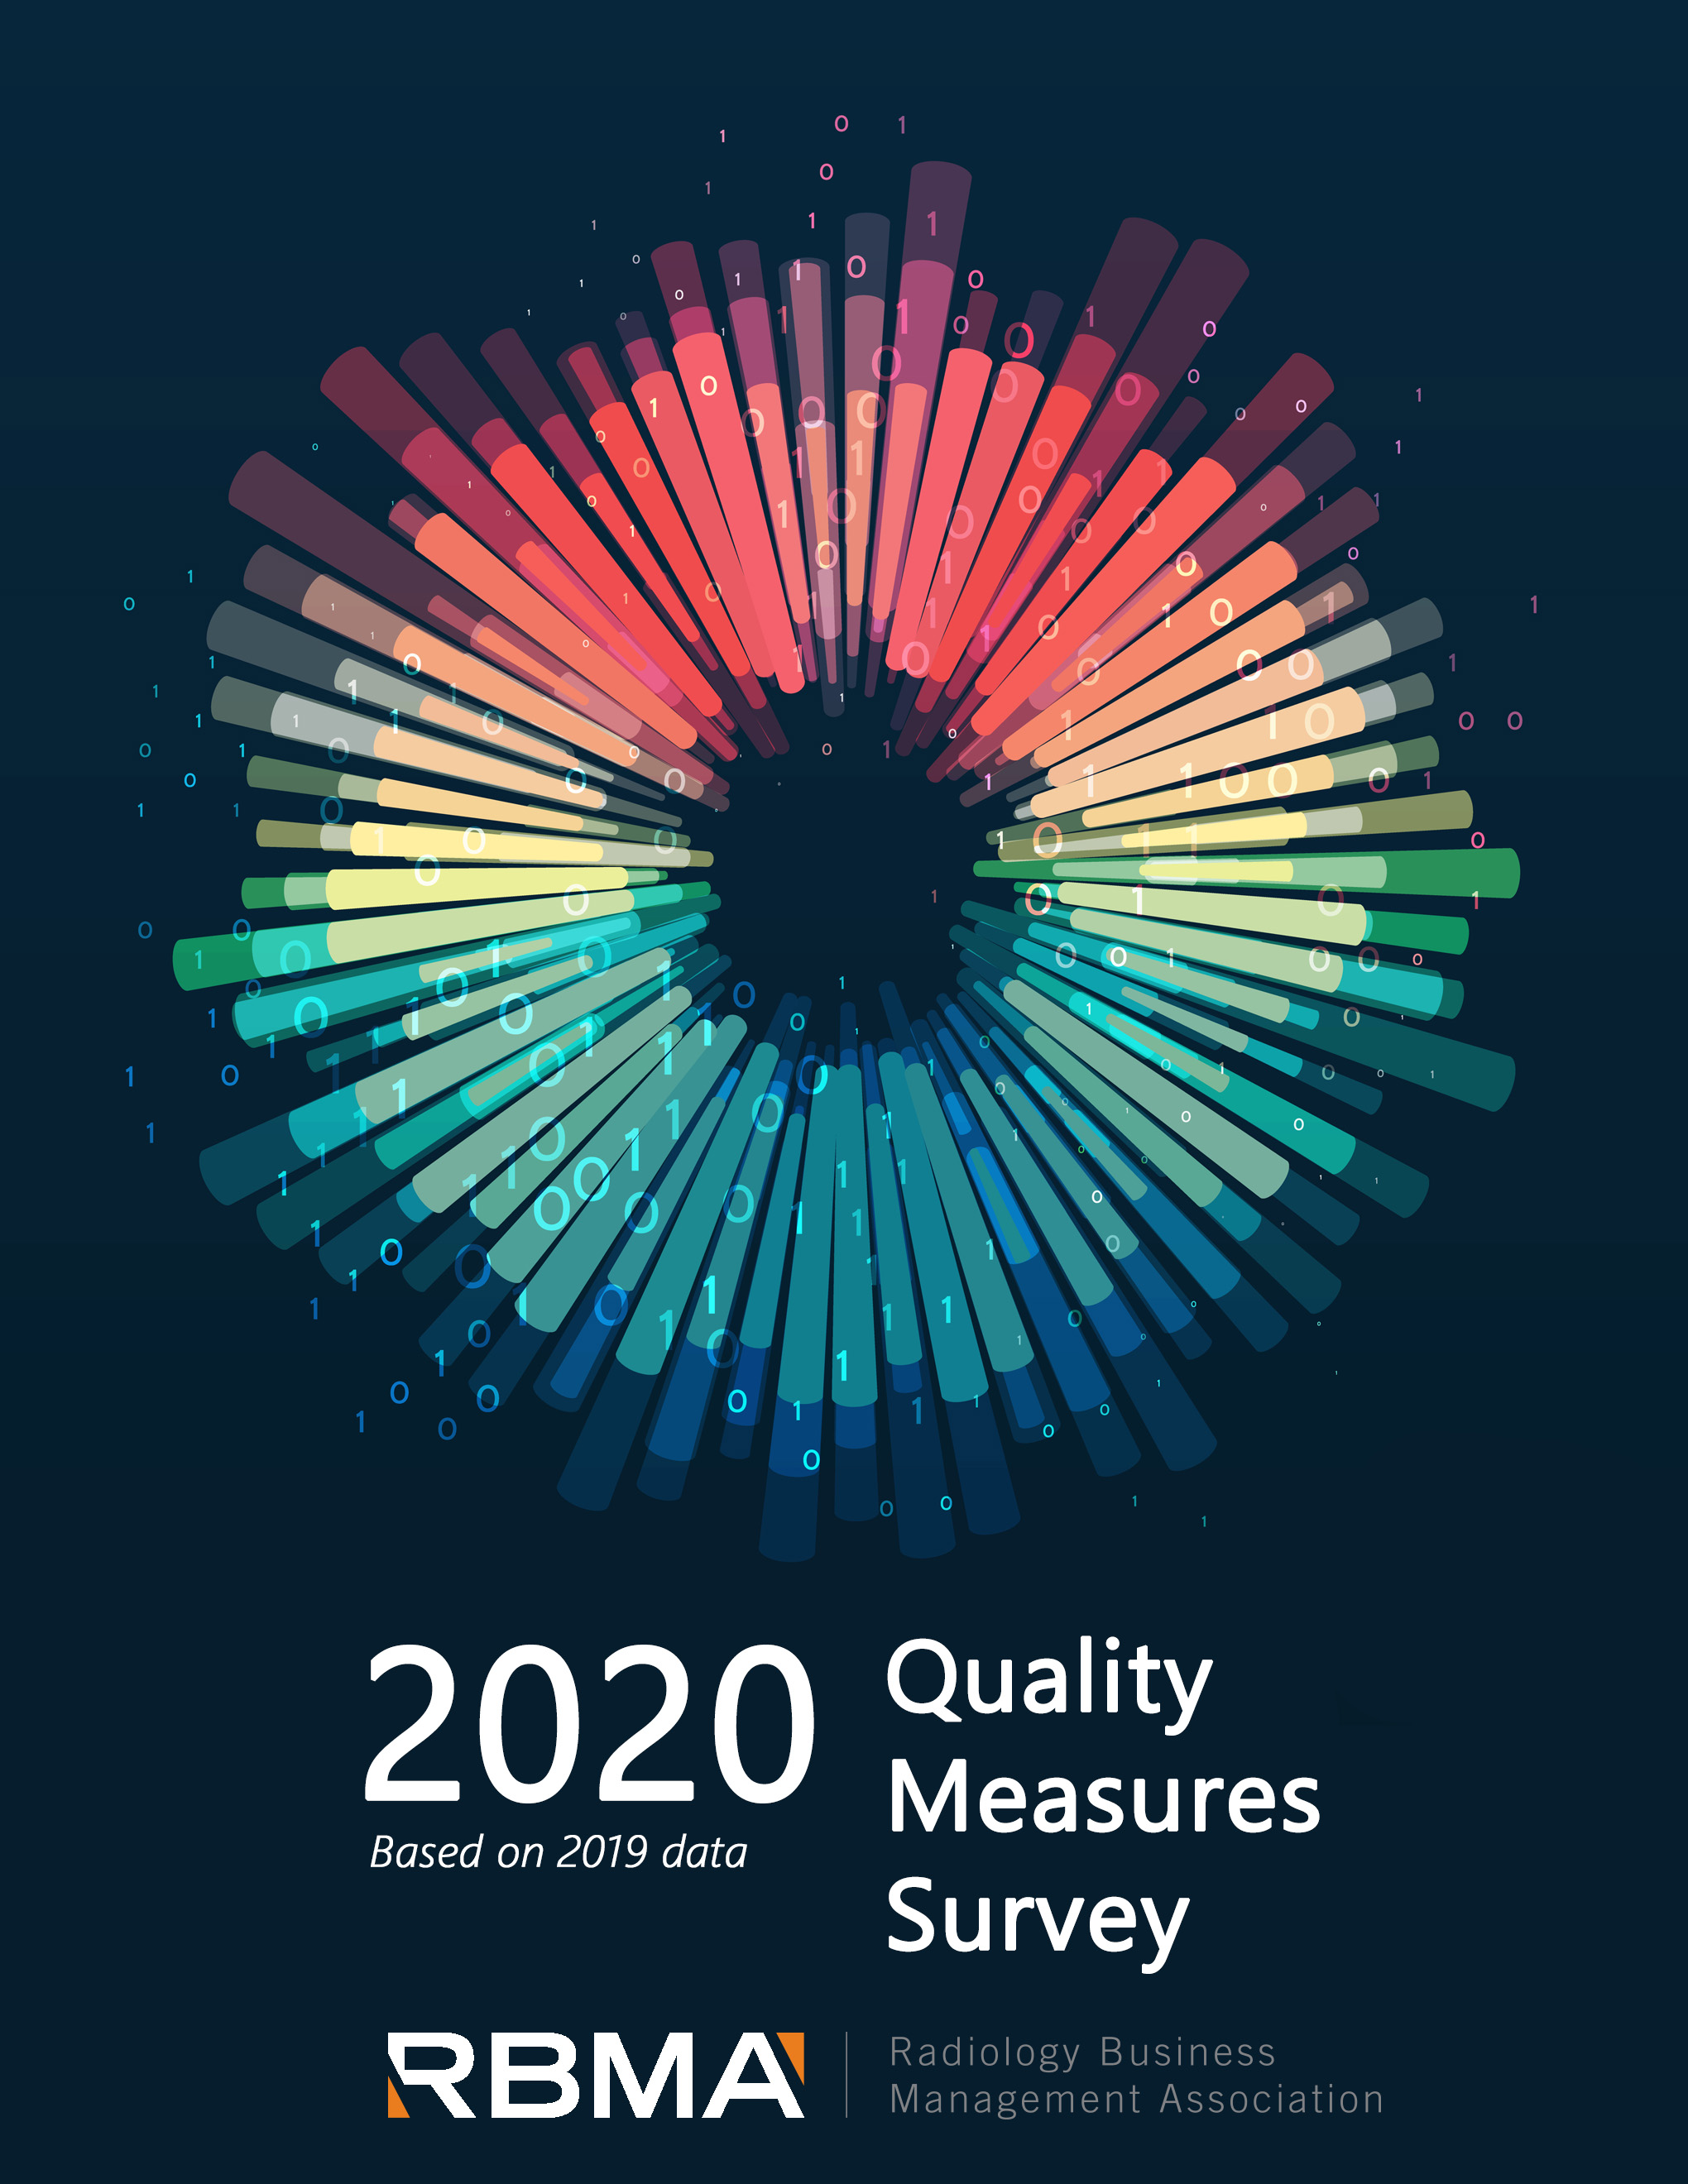 2020 Quality Measures Survey